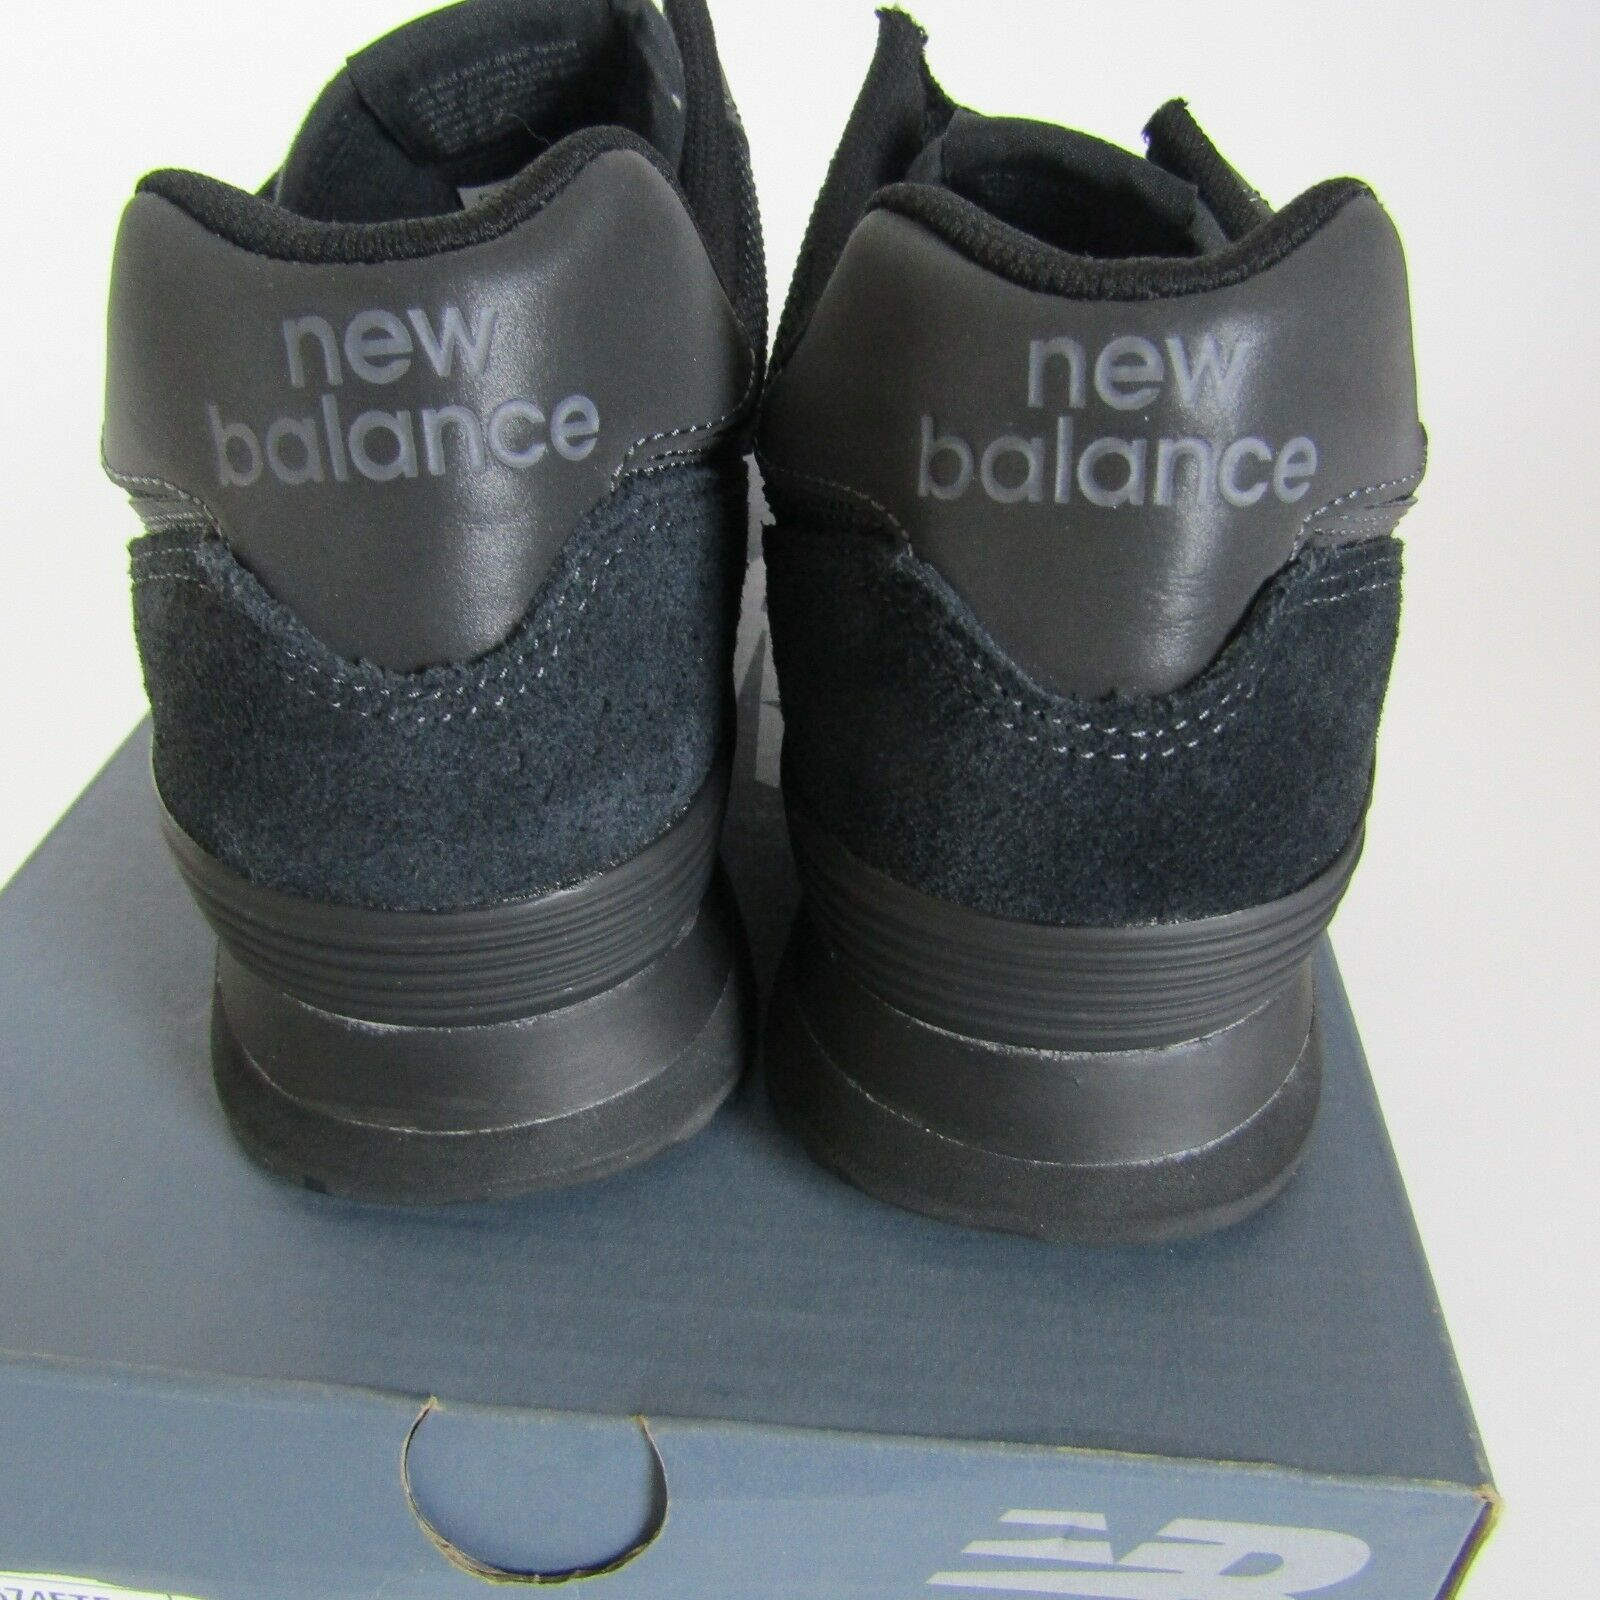 New Balance 574 Men's Sport Sneakers Walking Shoes ML574ETE Men's size 9 image 4